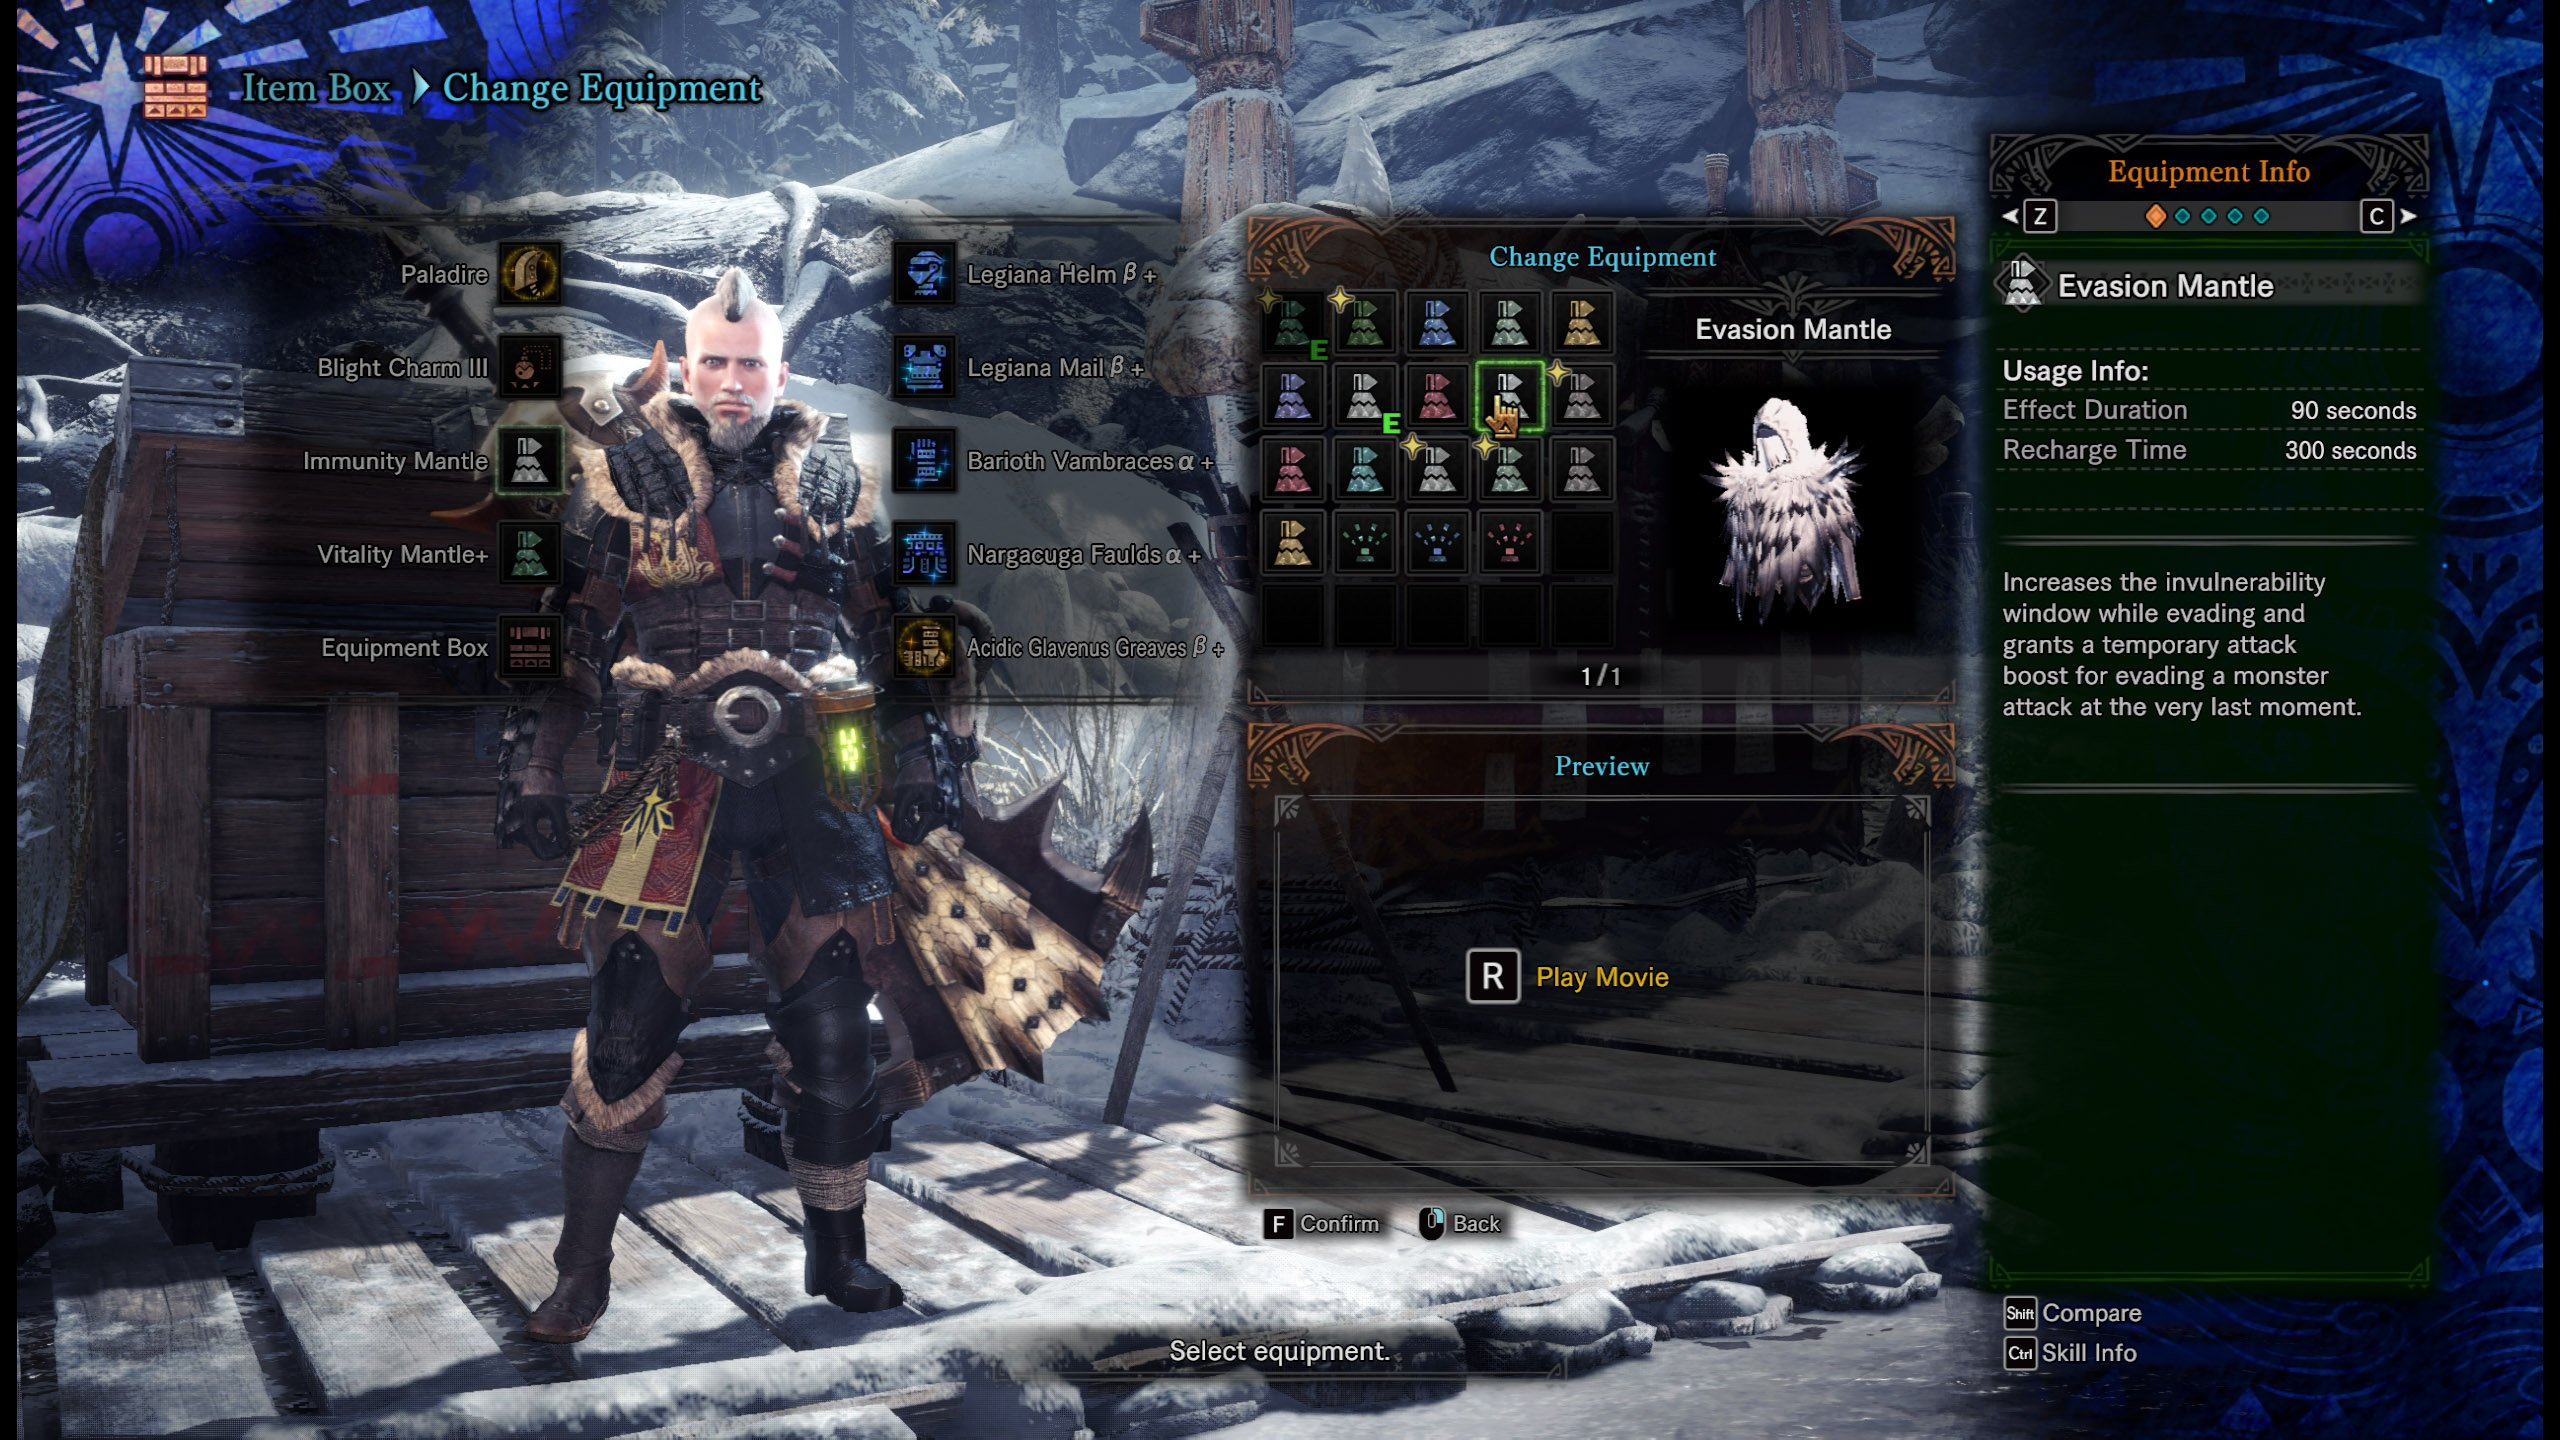 Evasion Mantle Monster Hunter World